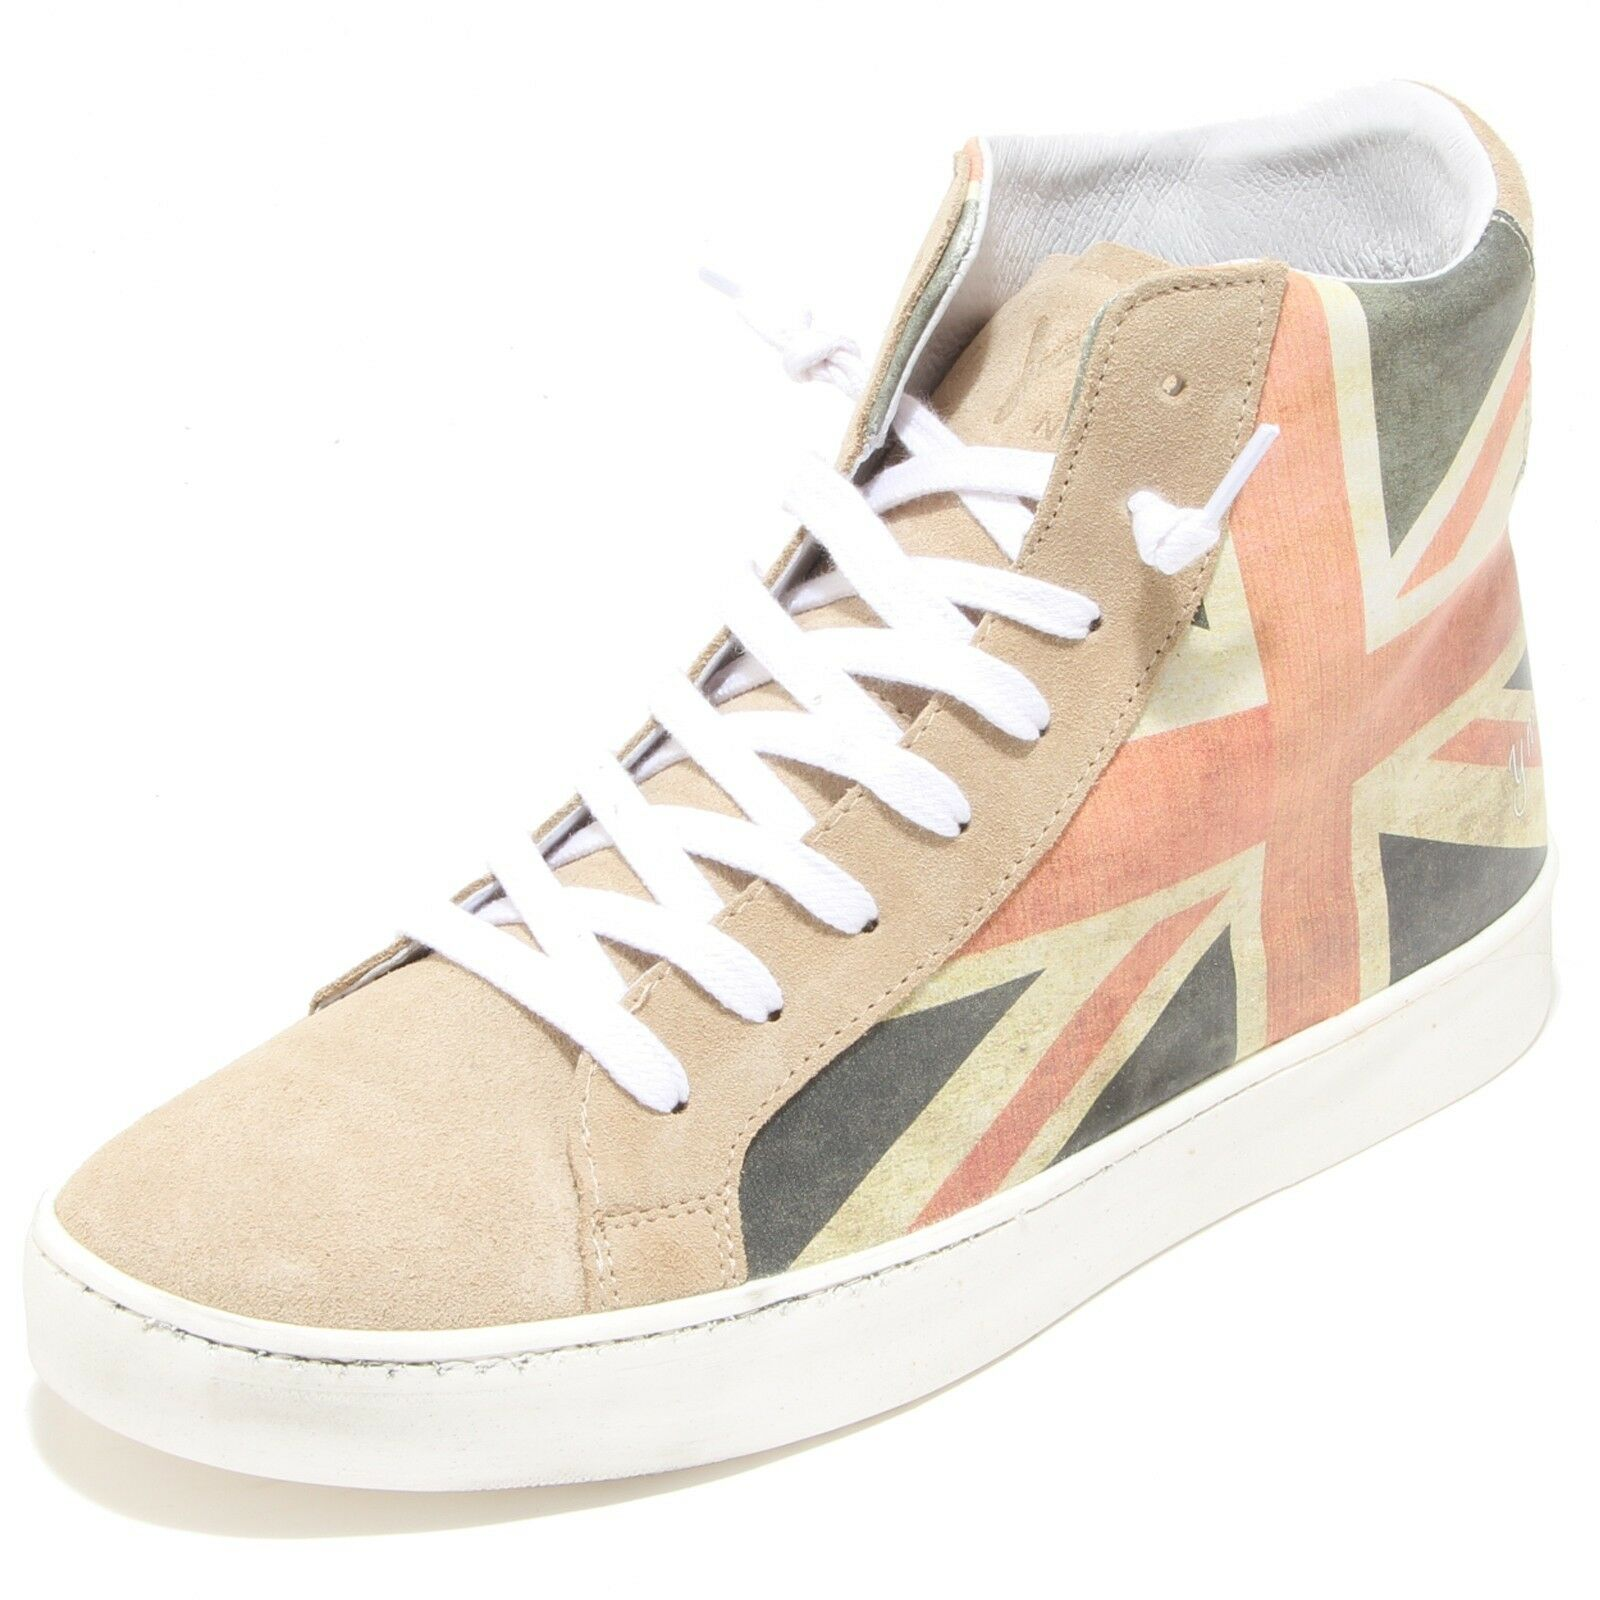 2987I sneakers hombre Y NOTflag great Zapatos britain Zapatos great Zapatos men 398c4f